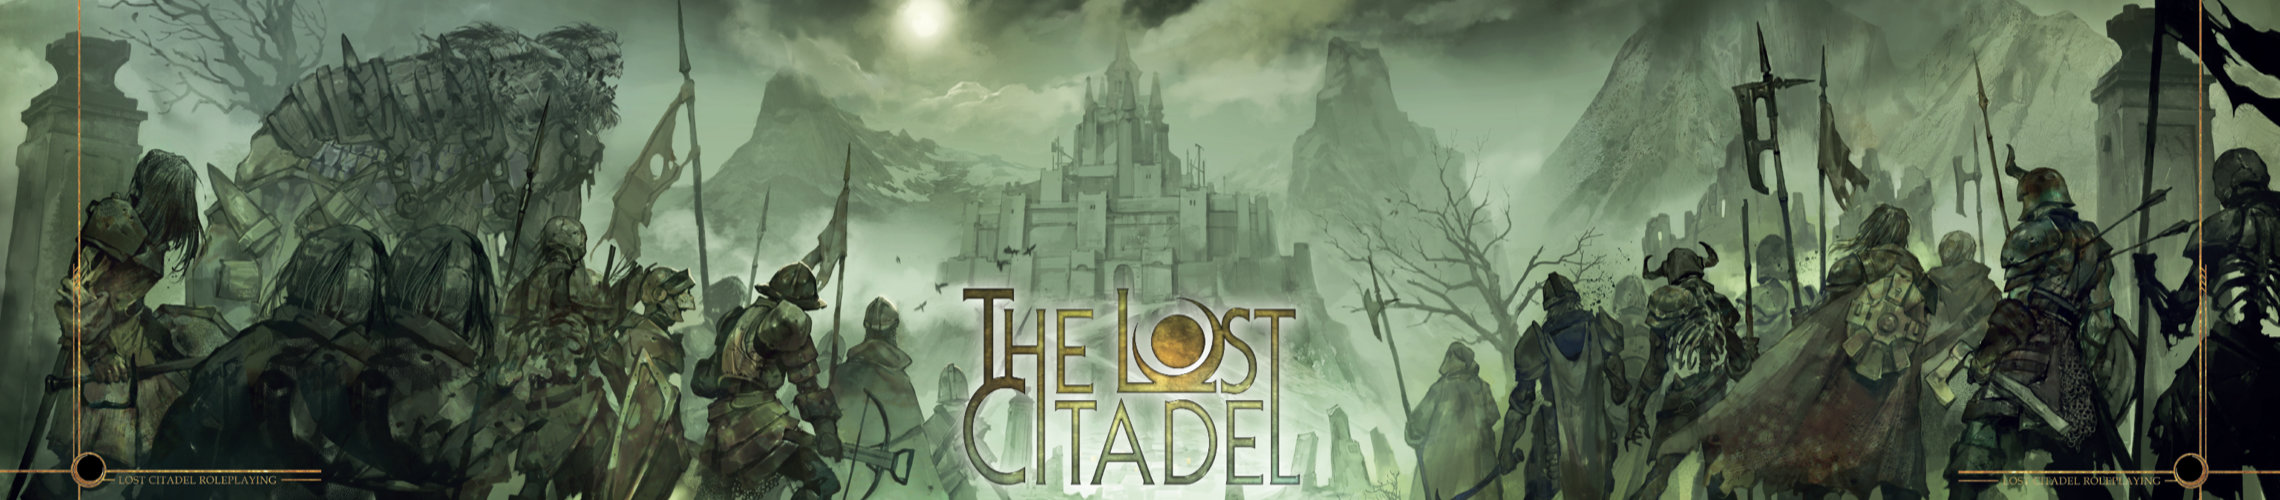 The Lost Citadel Roleplaying GM Screen Front